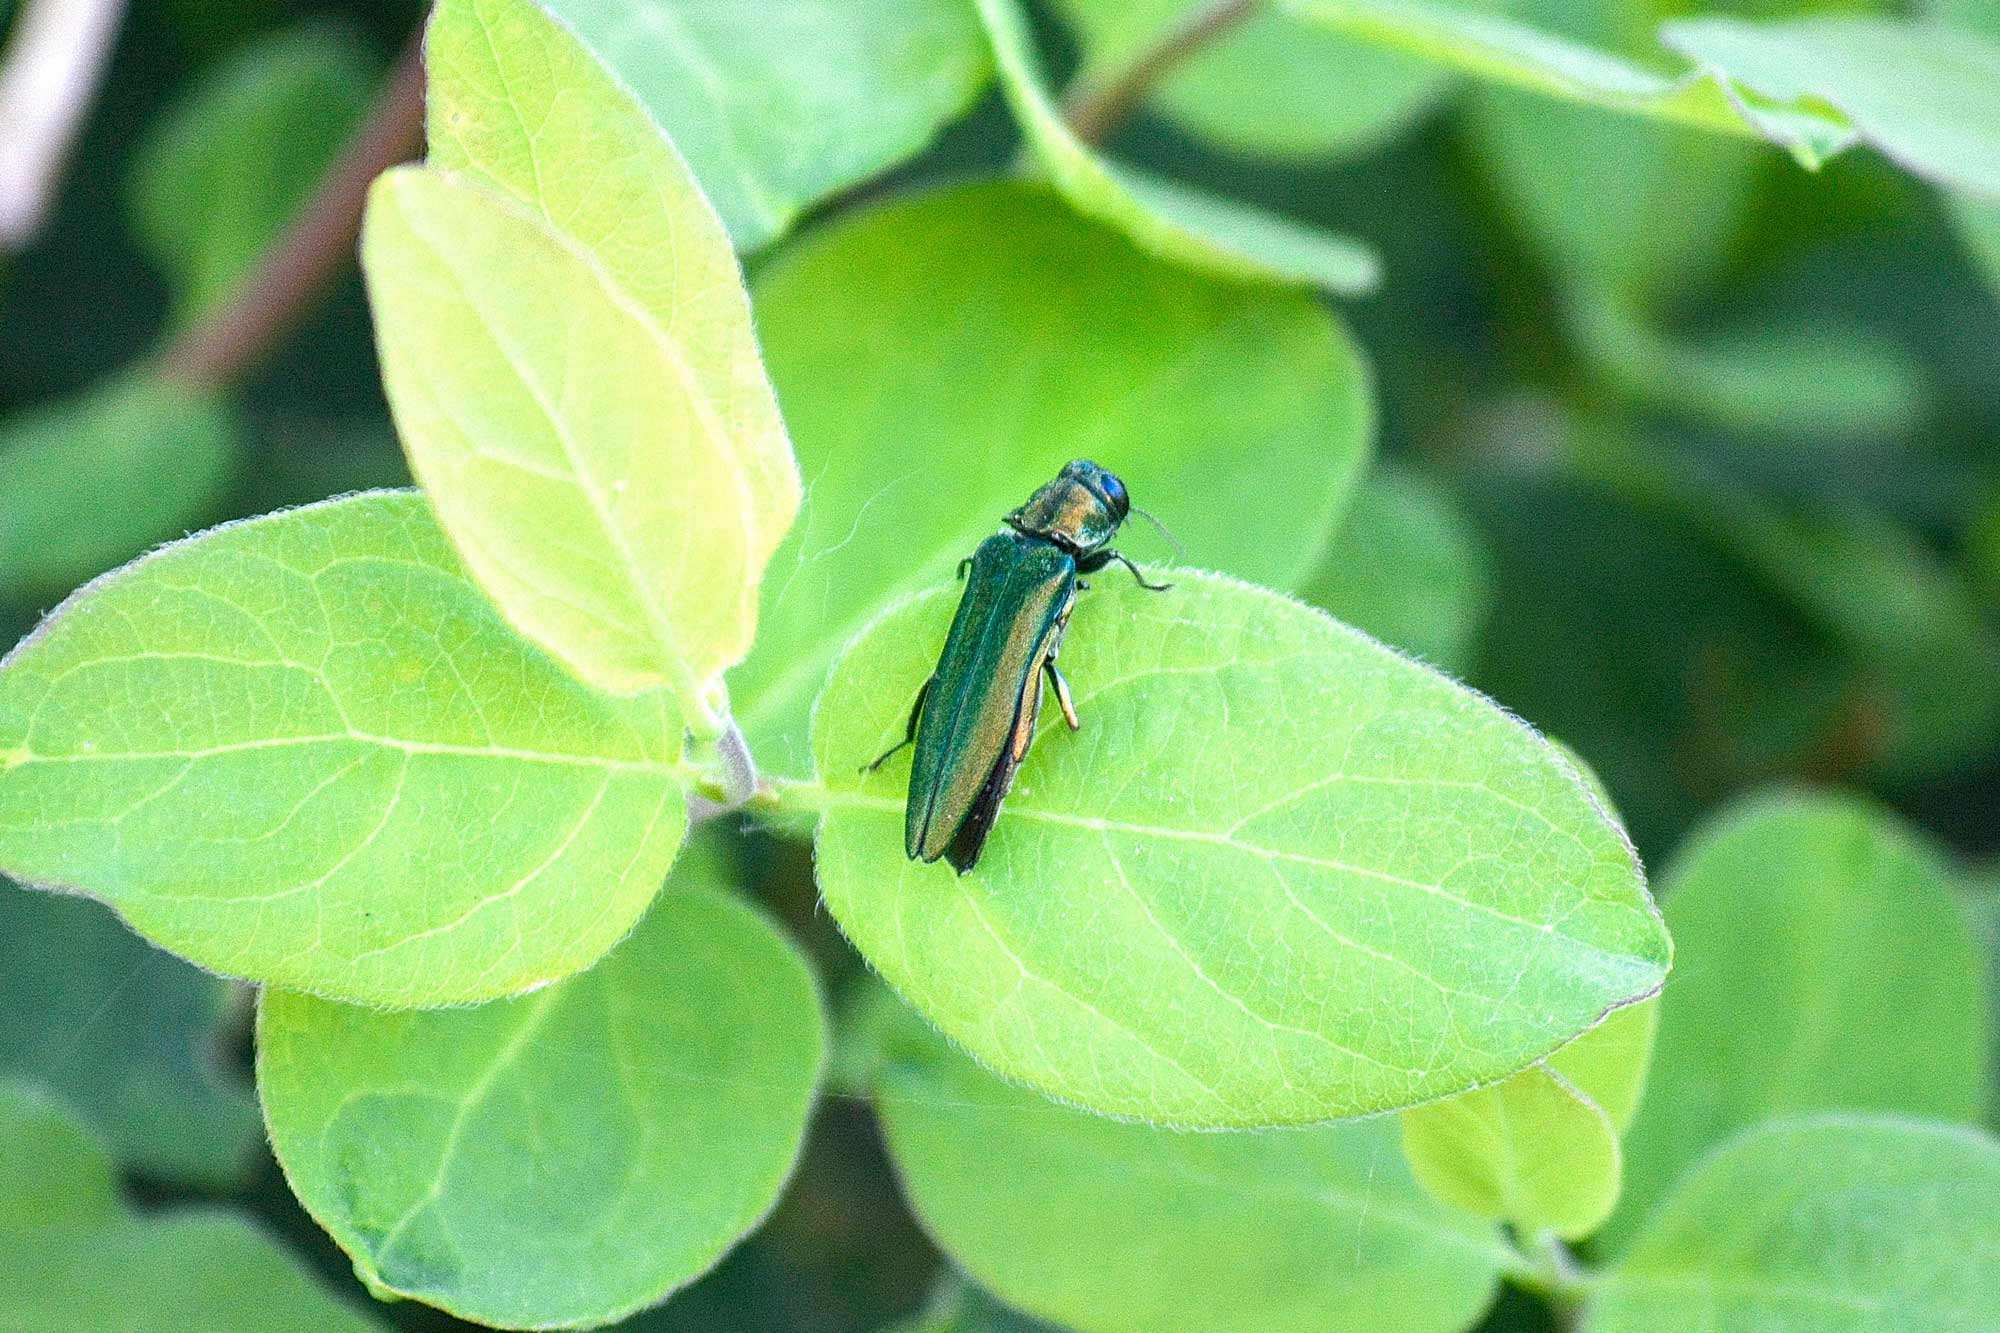 The emerald ash borer may not look fearsome, but the invasive species has no natural predators in the U.S. and is wreaking devastation on the nation's ash trees.